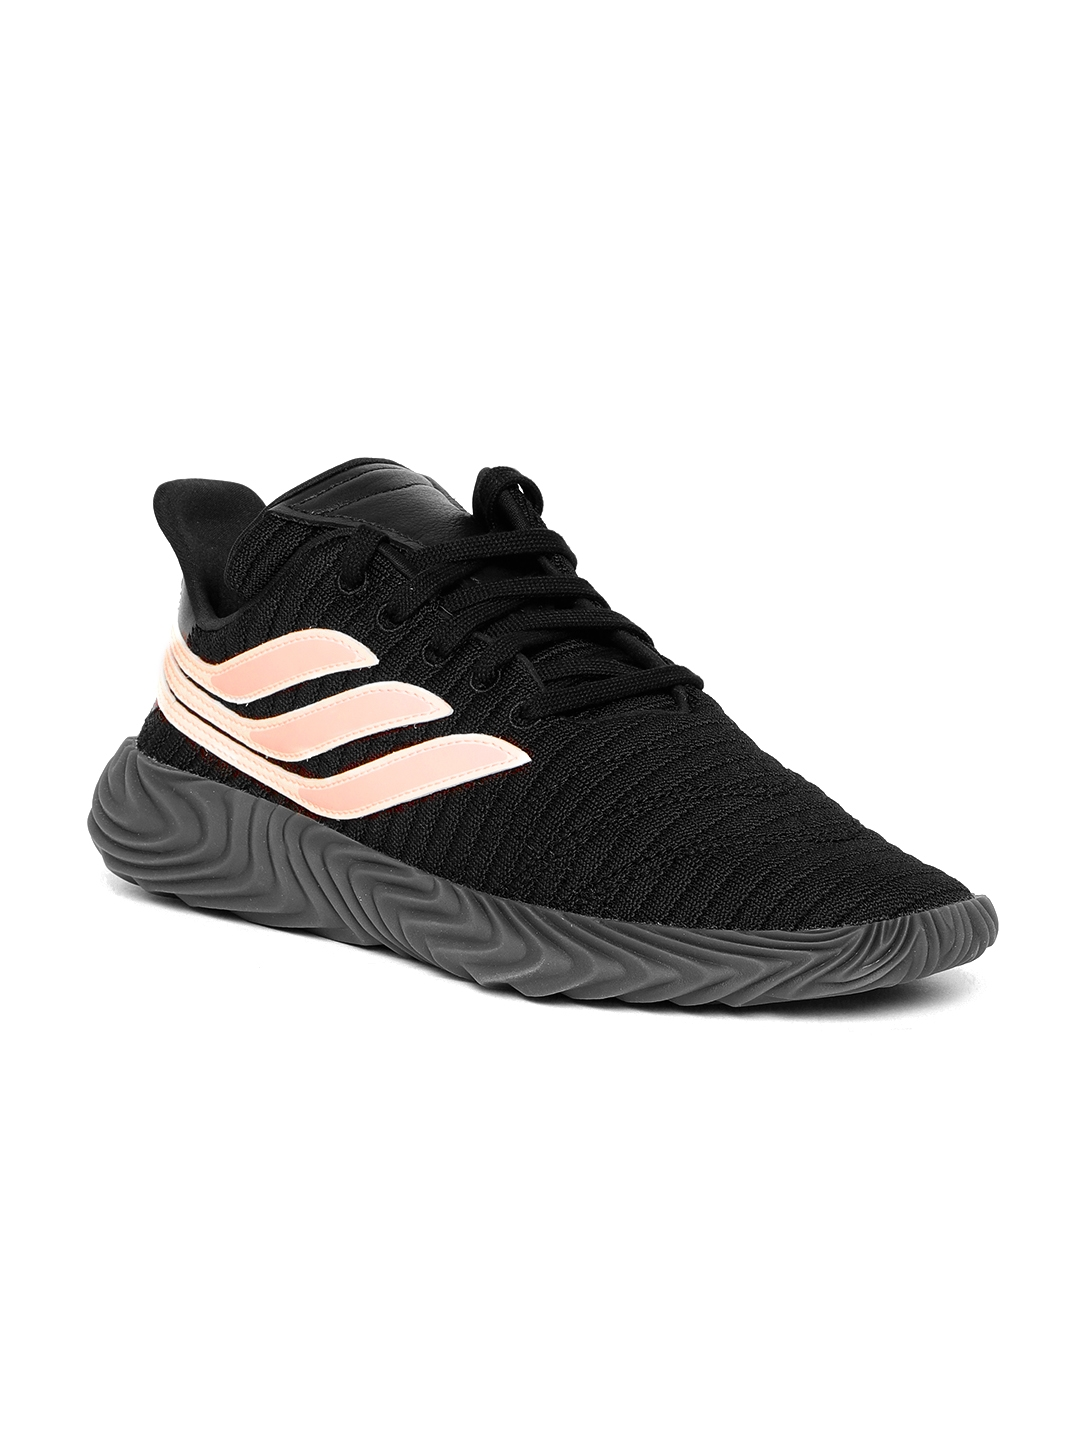 pick up 70e50 65e7d ADIDAS Originals Men Black  Peach-Coloured SOBAKOV Sneakers